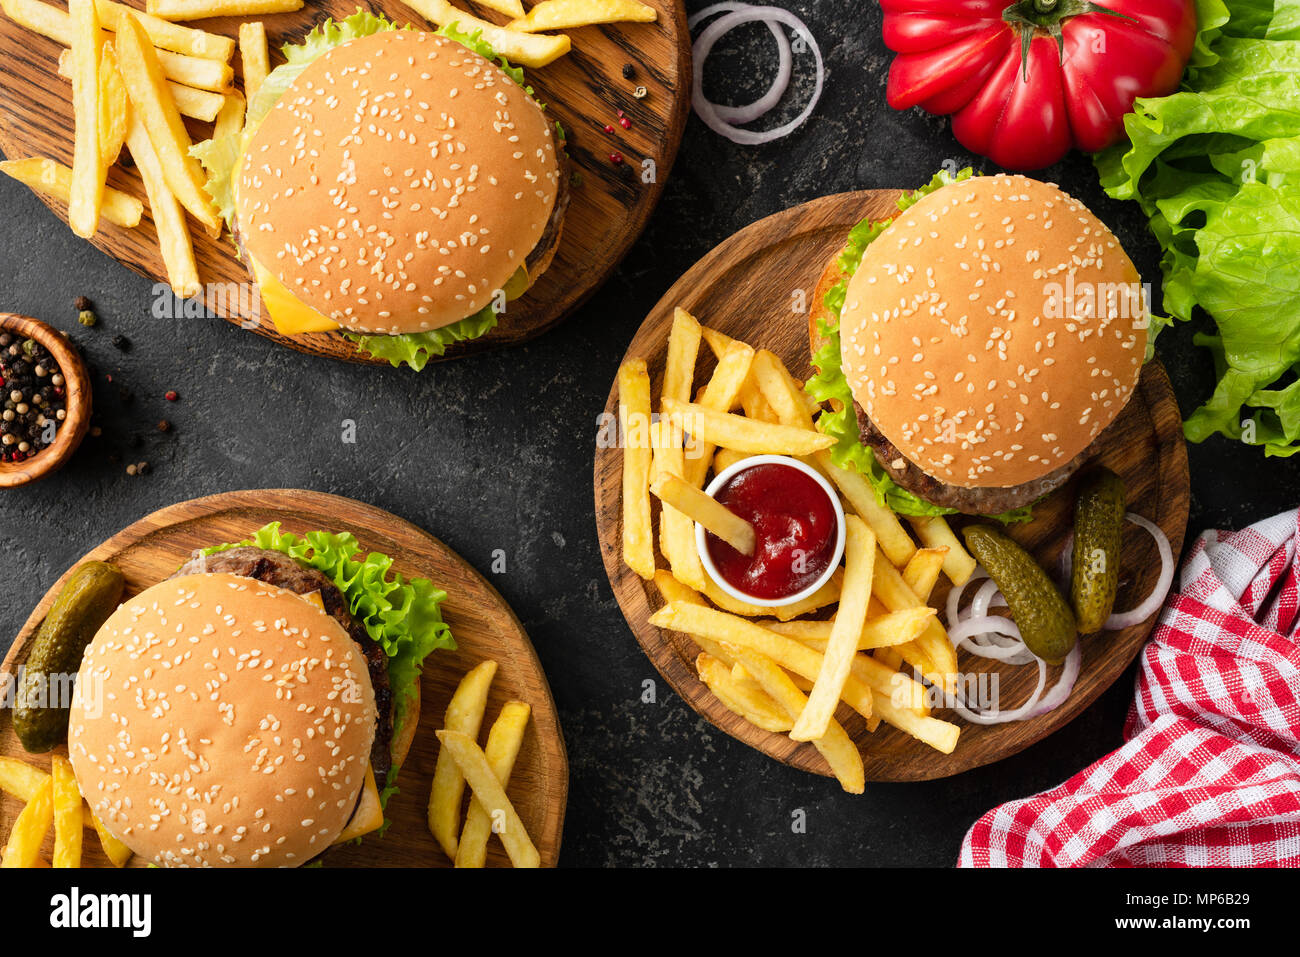 Tasty burgers, cheeseburgers, french fries, salad and red plaid kitchen textile, table top view. Three burgers or cheeseburgers, french fries and ketc - Stock Image